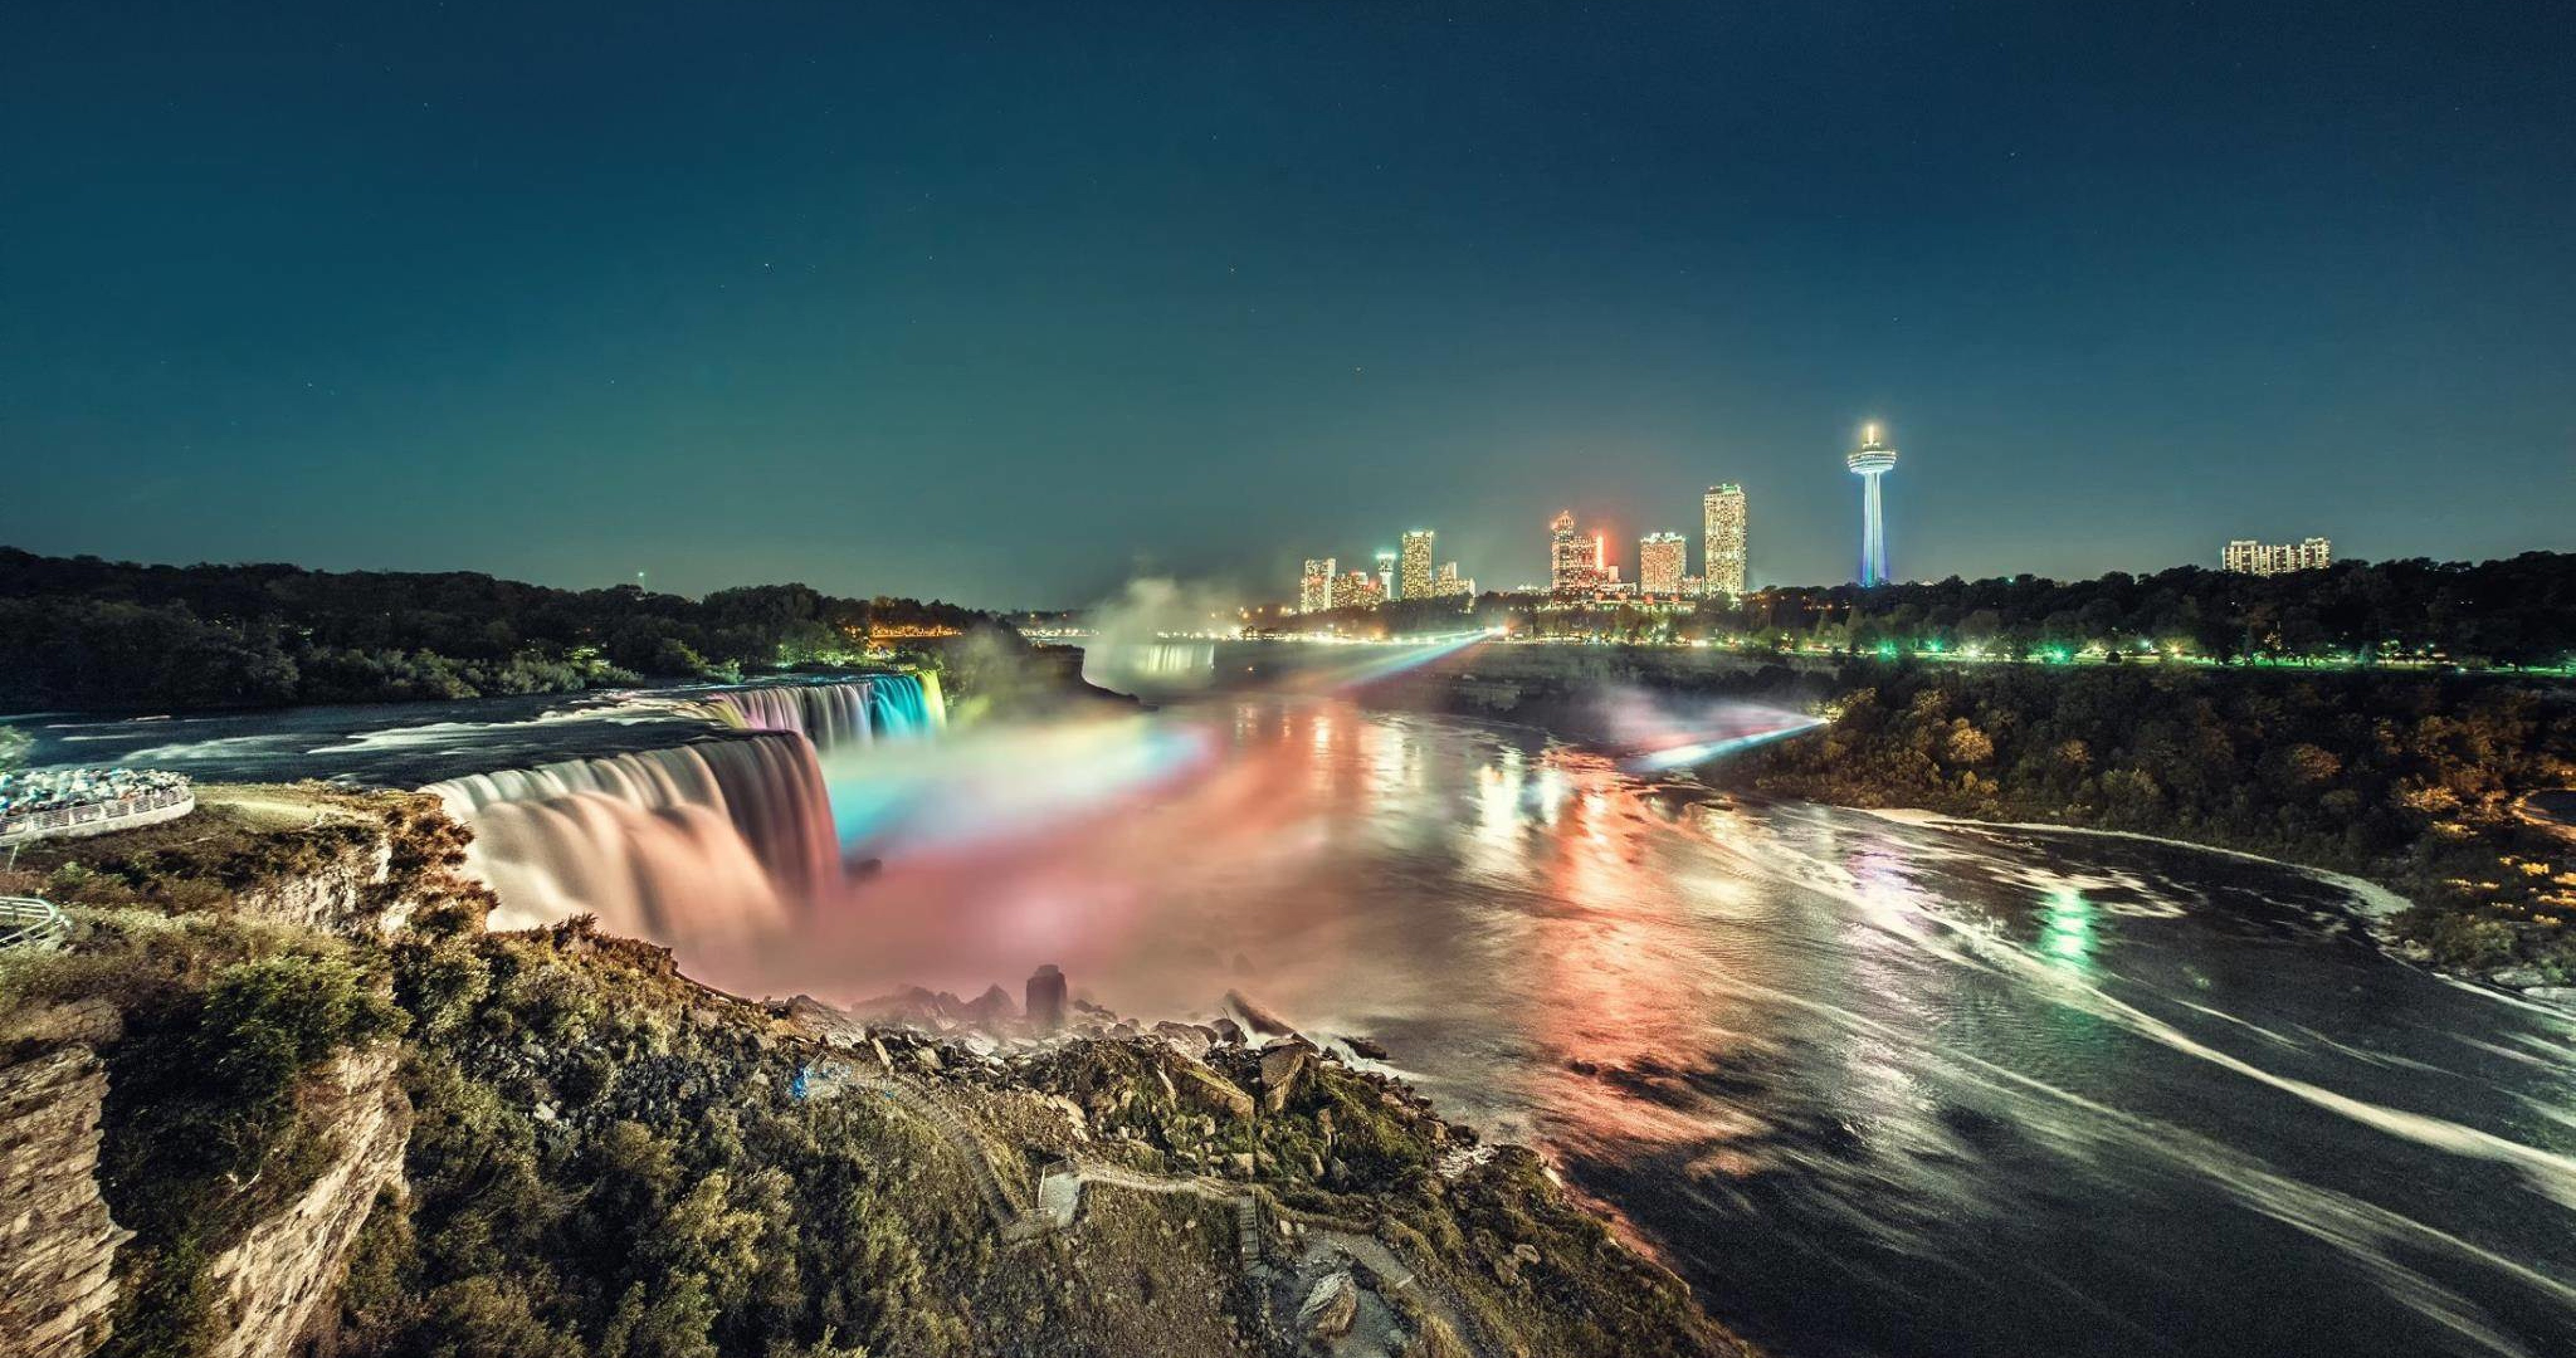 Victoria Falls Wallpapers High Resolution Niagara Falls At Night 4k Ultra Hd Wallpaper 187 High